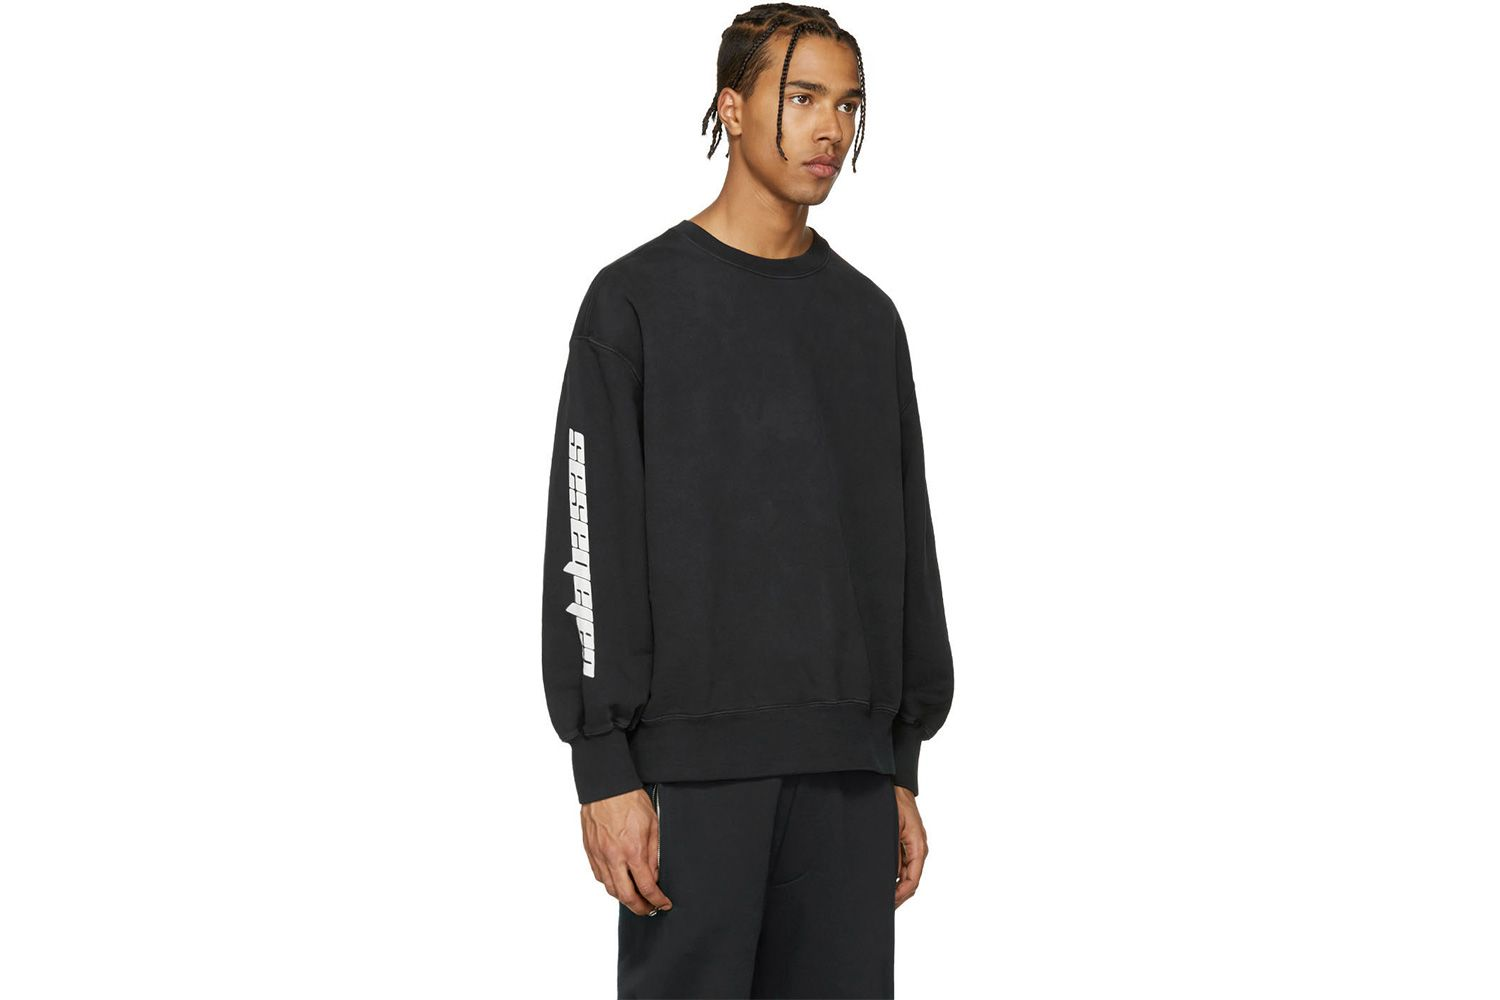 pieces from YEEZY Season 4 collection